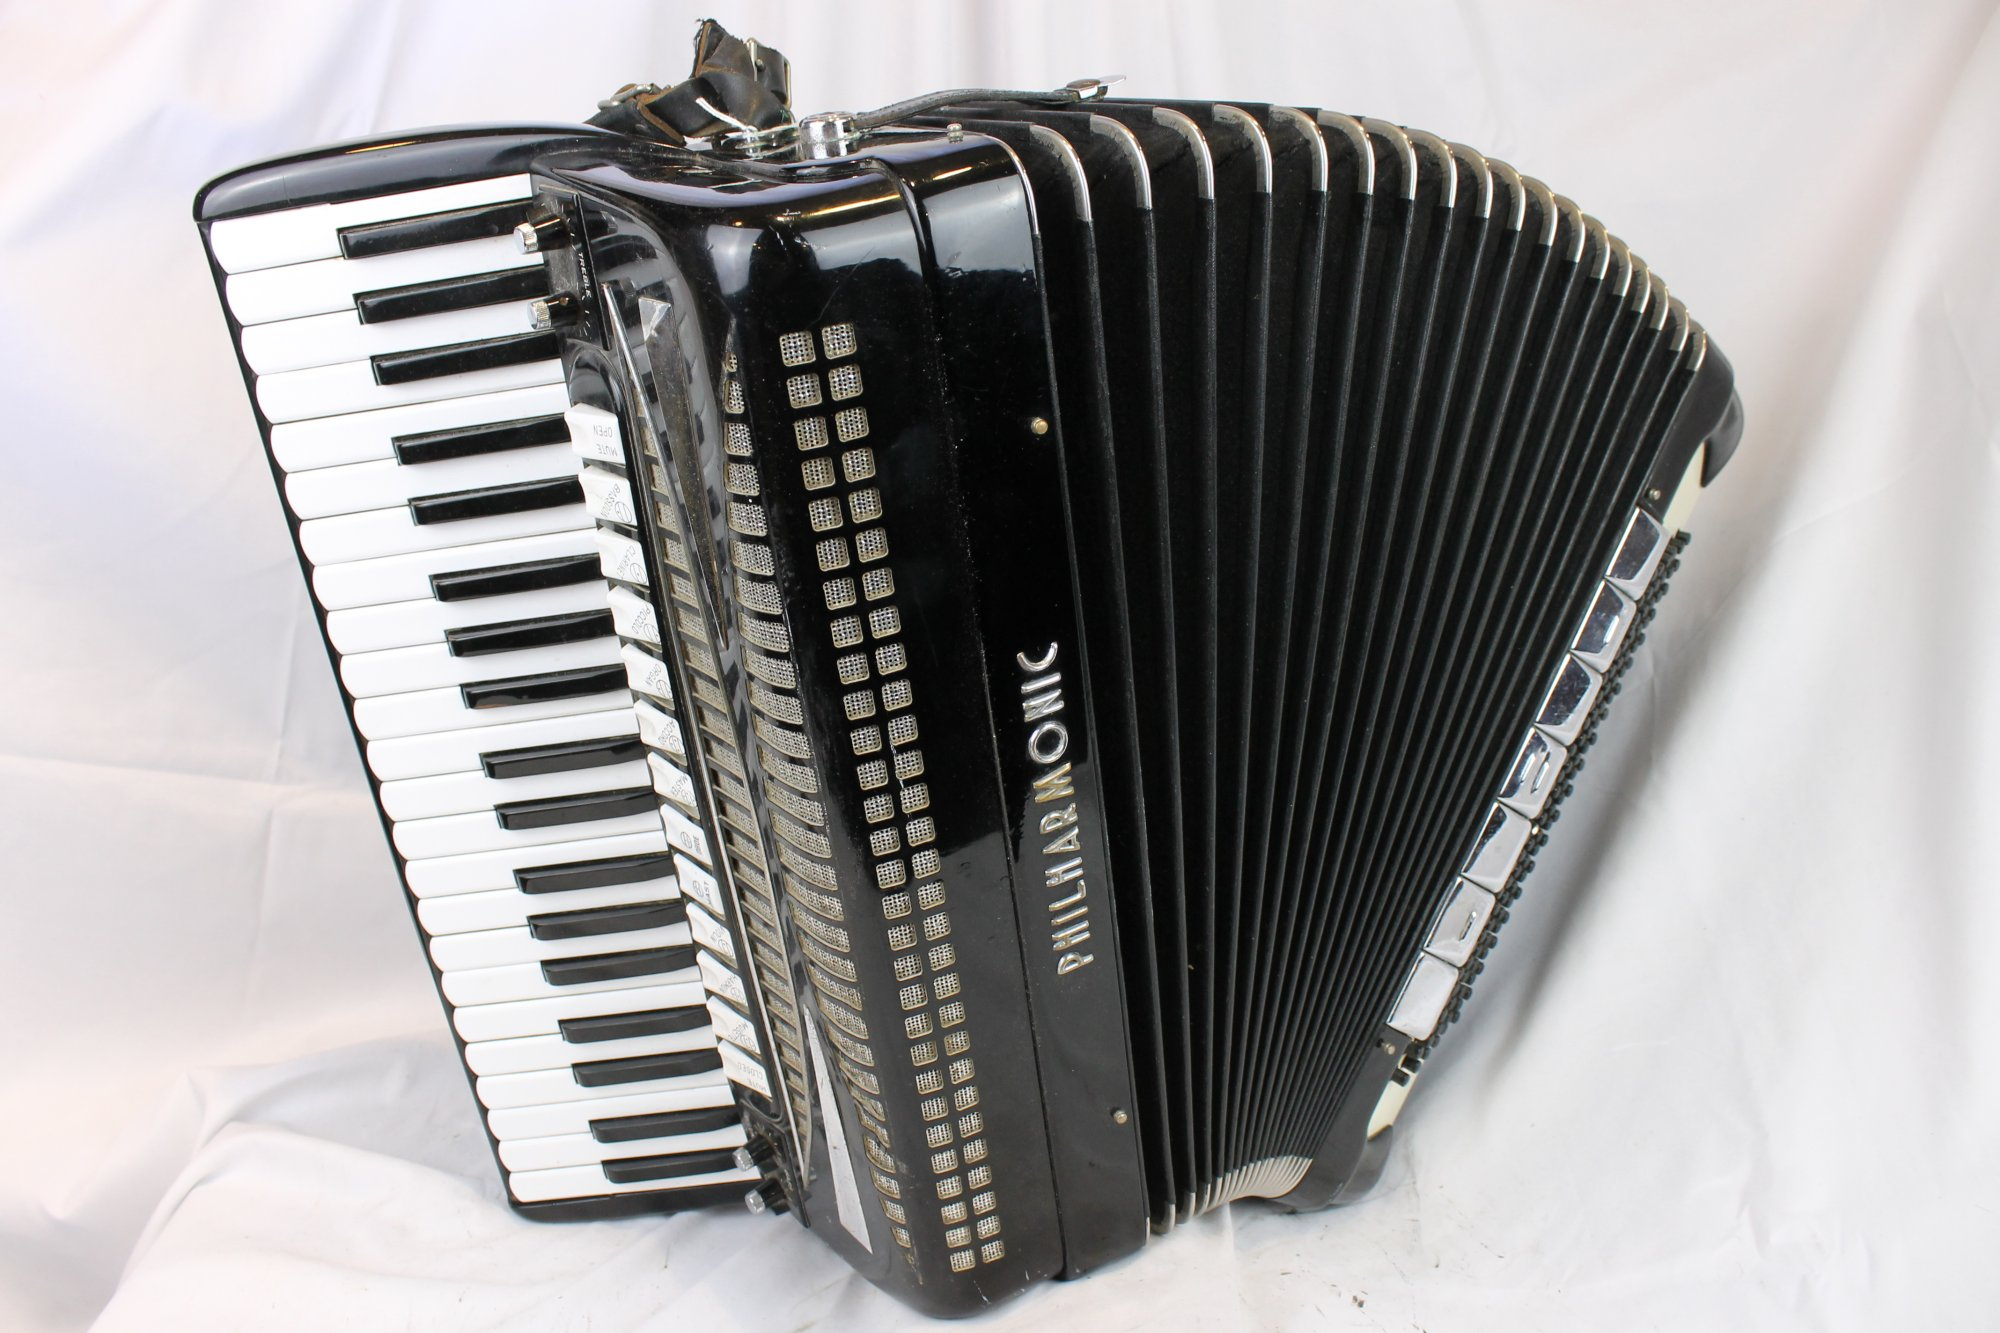 3804 - Black Philharmonic Piano Accordion LMMH 41 120